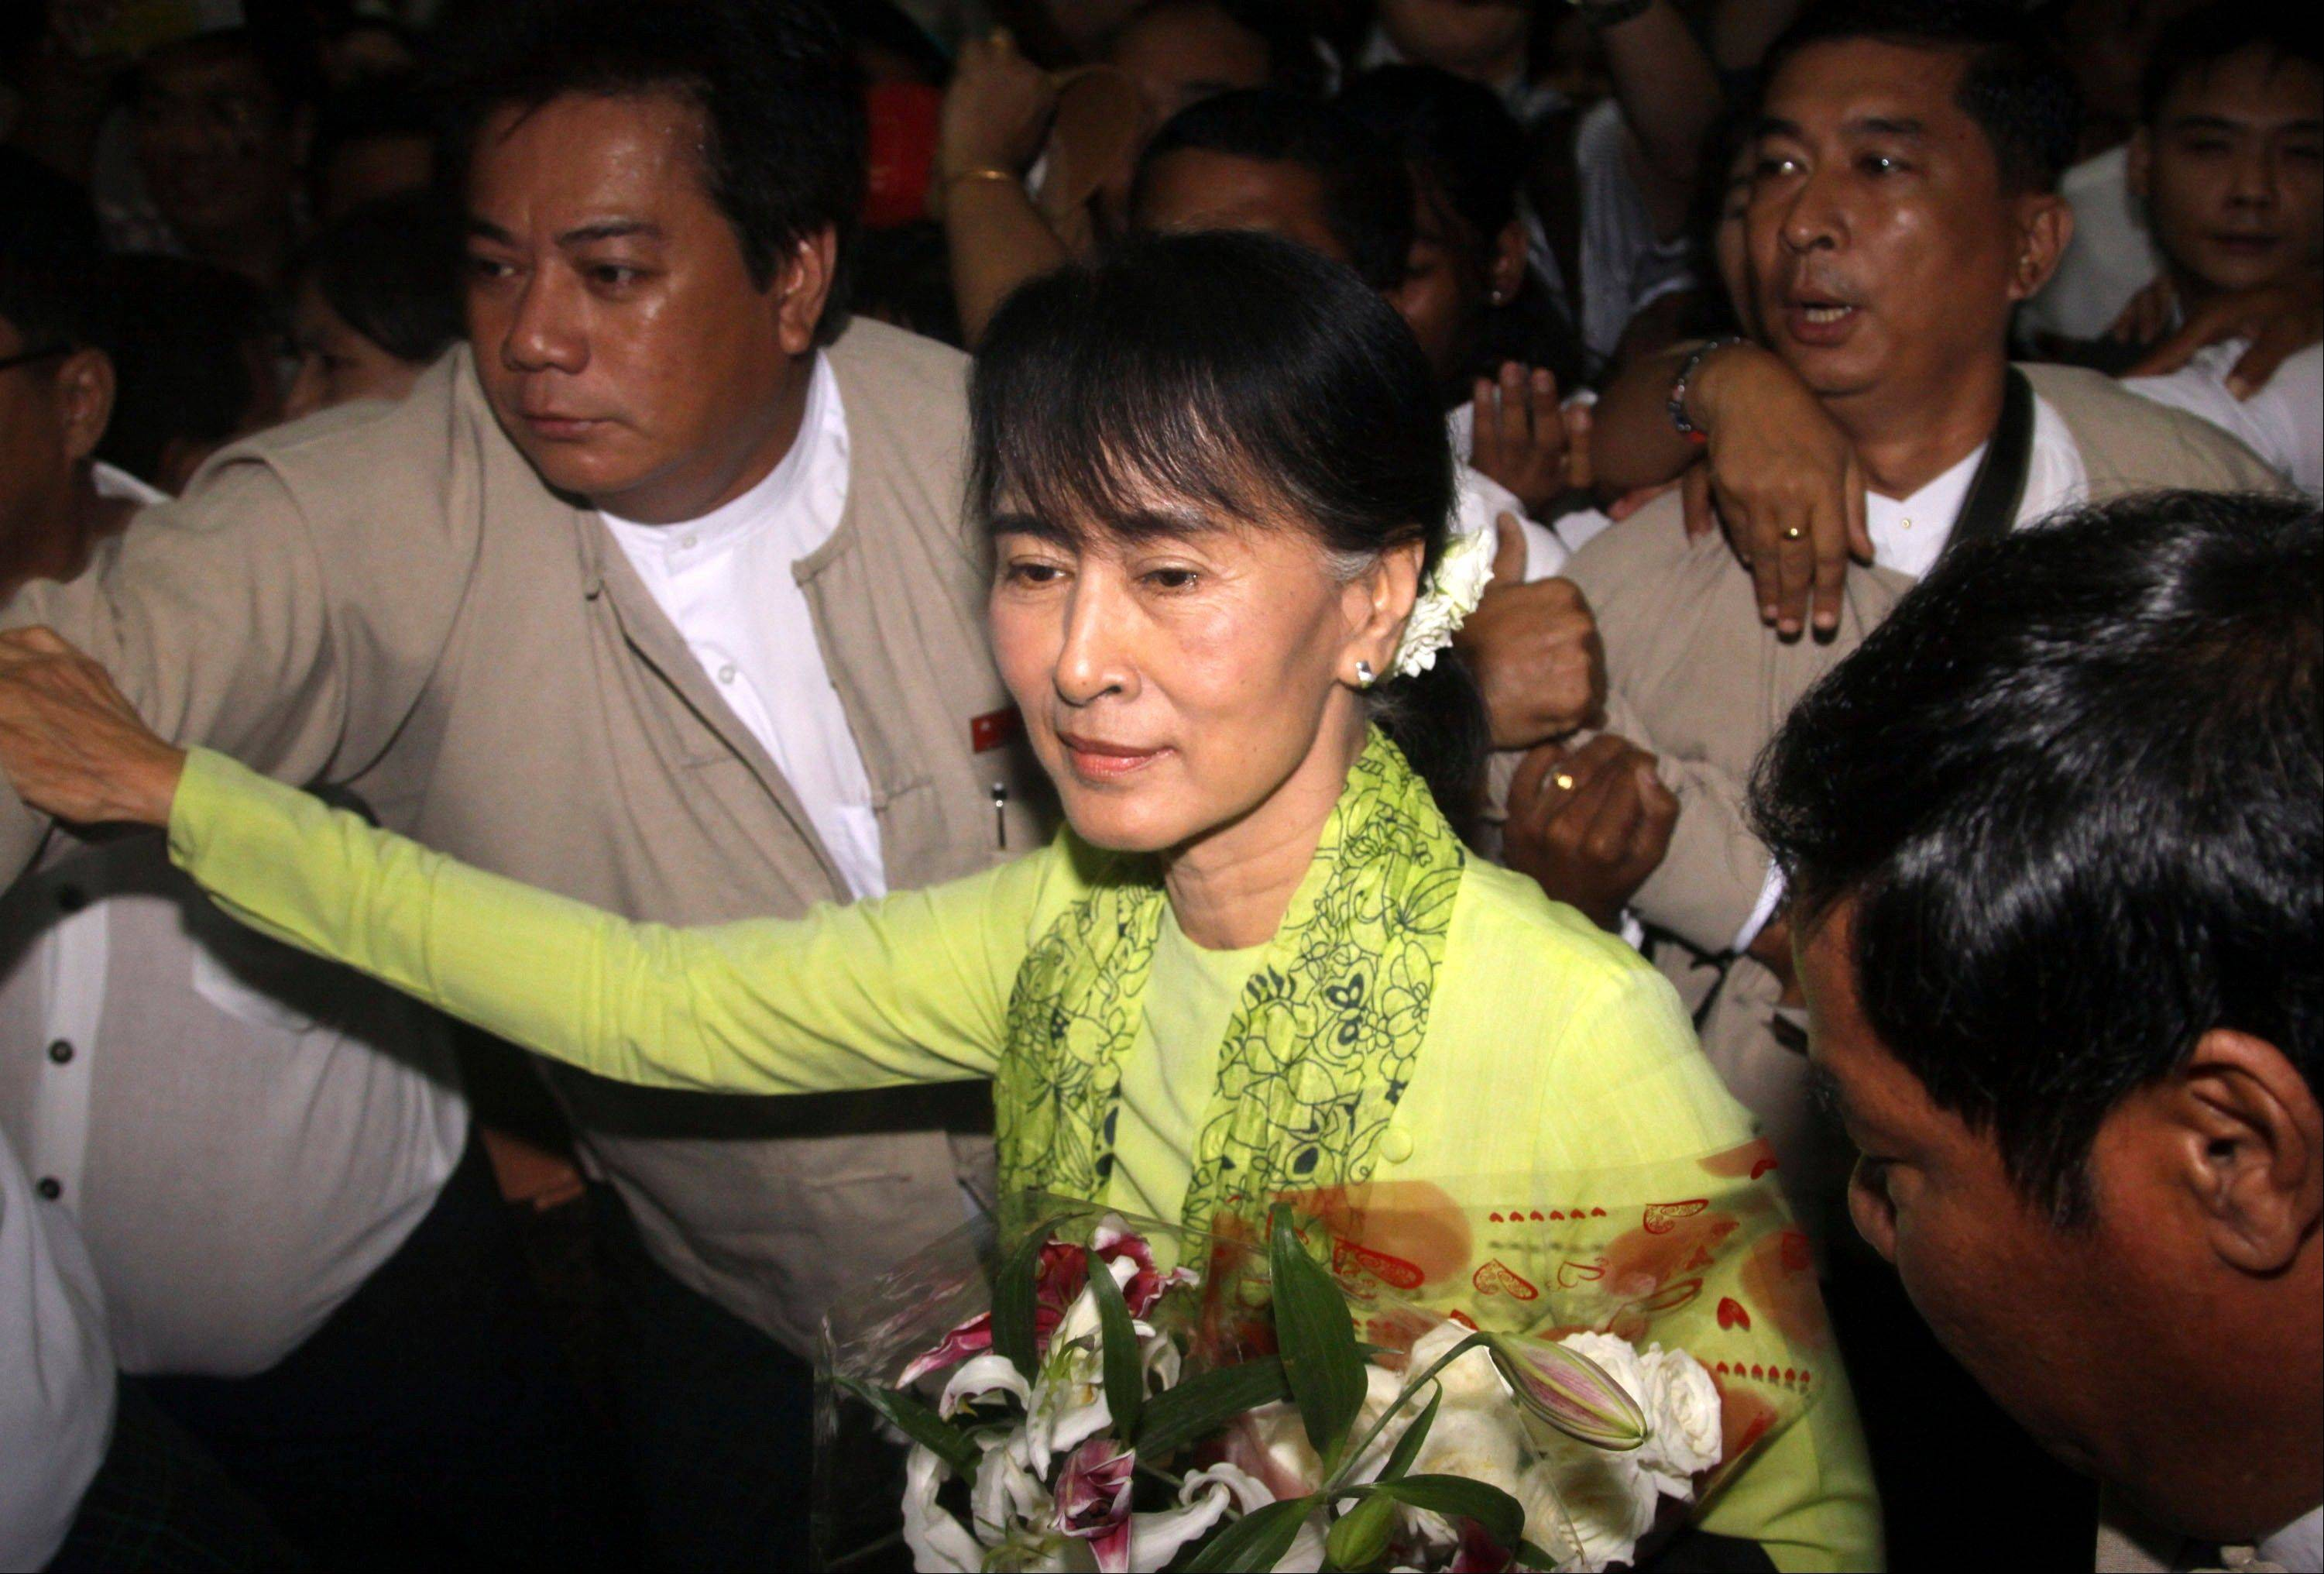 Myanmar opposition Leader Aung San Suu Kyi left Sunday on her first U.S. trip since she was put under house arrest in1990. She will be feted in Washington this week and presented Congress's highest award, the latest milestone in her journey from political prisoner to globe-trotting stateswoman. The Nobel Peace laureate's 17-day U.S. tour, starting Monday, comes as the Obama administration considers easing its remaining sanctions on the country also known as Burma.